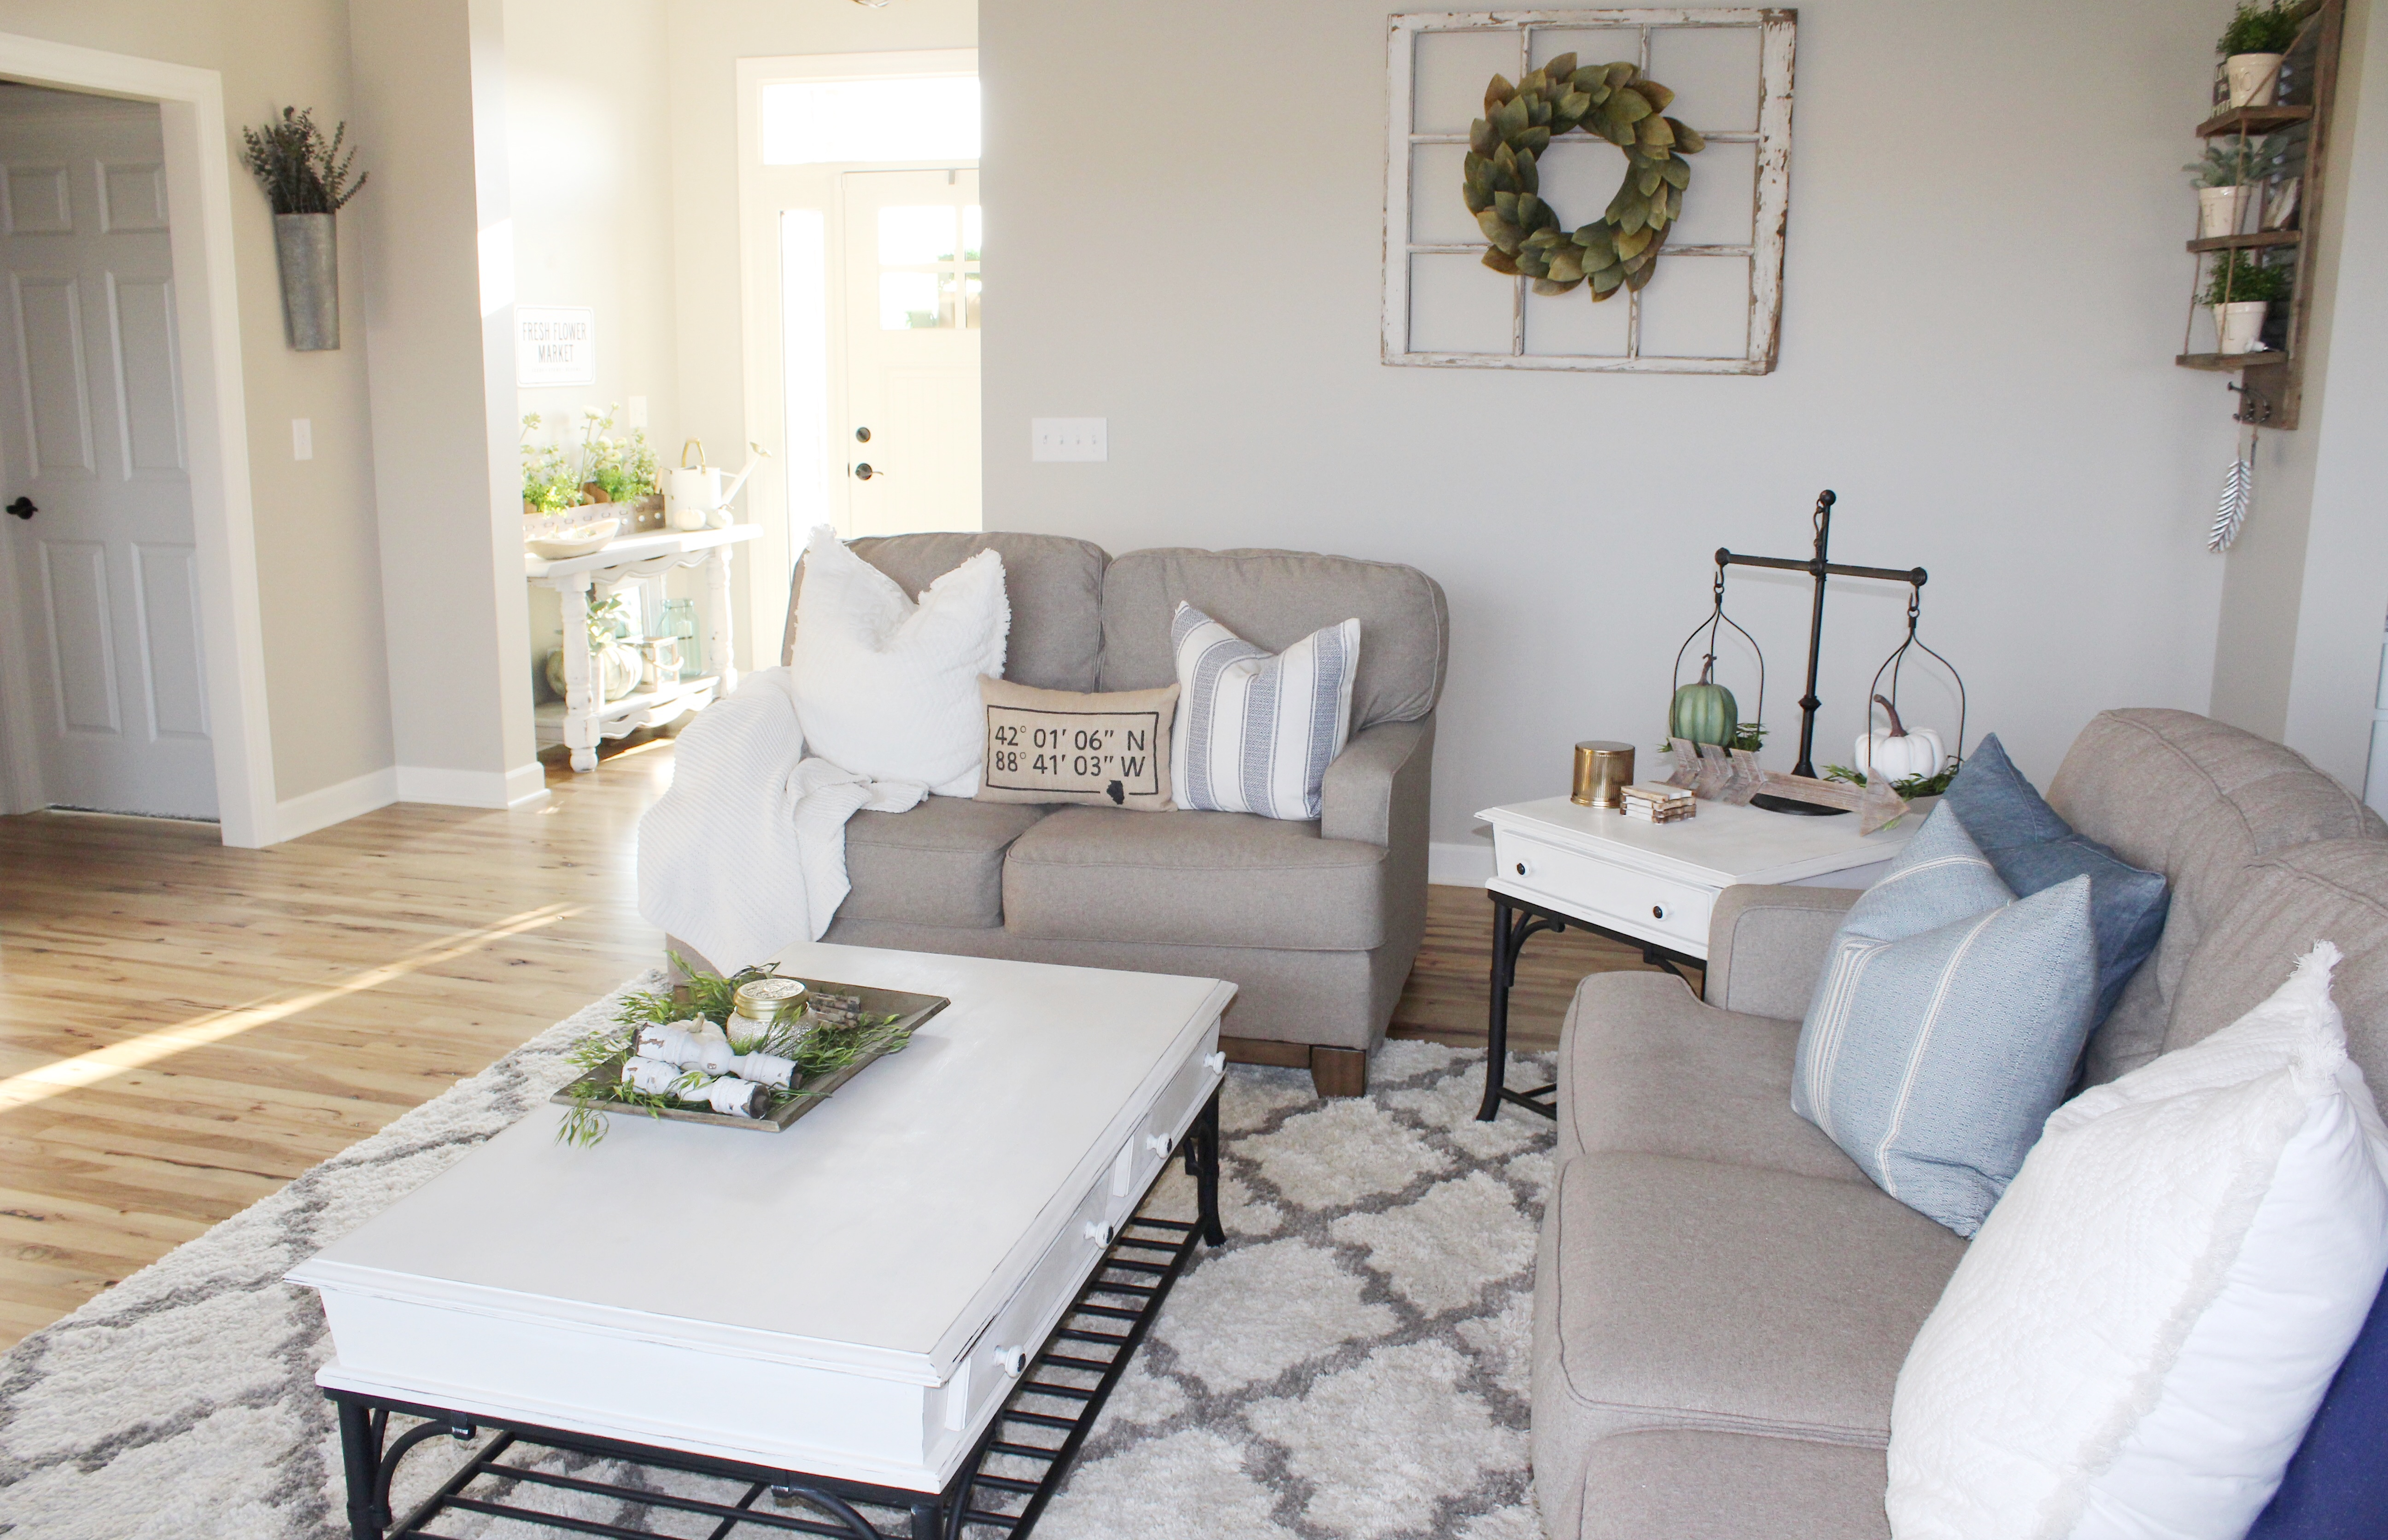 6 best farmhouse rugs on a budget the holtz house - Best area rugs for living room ...